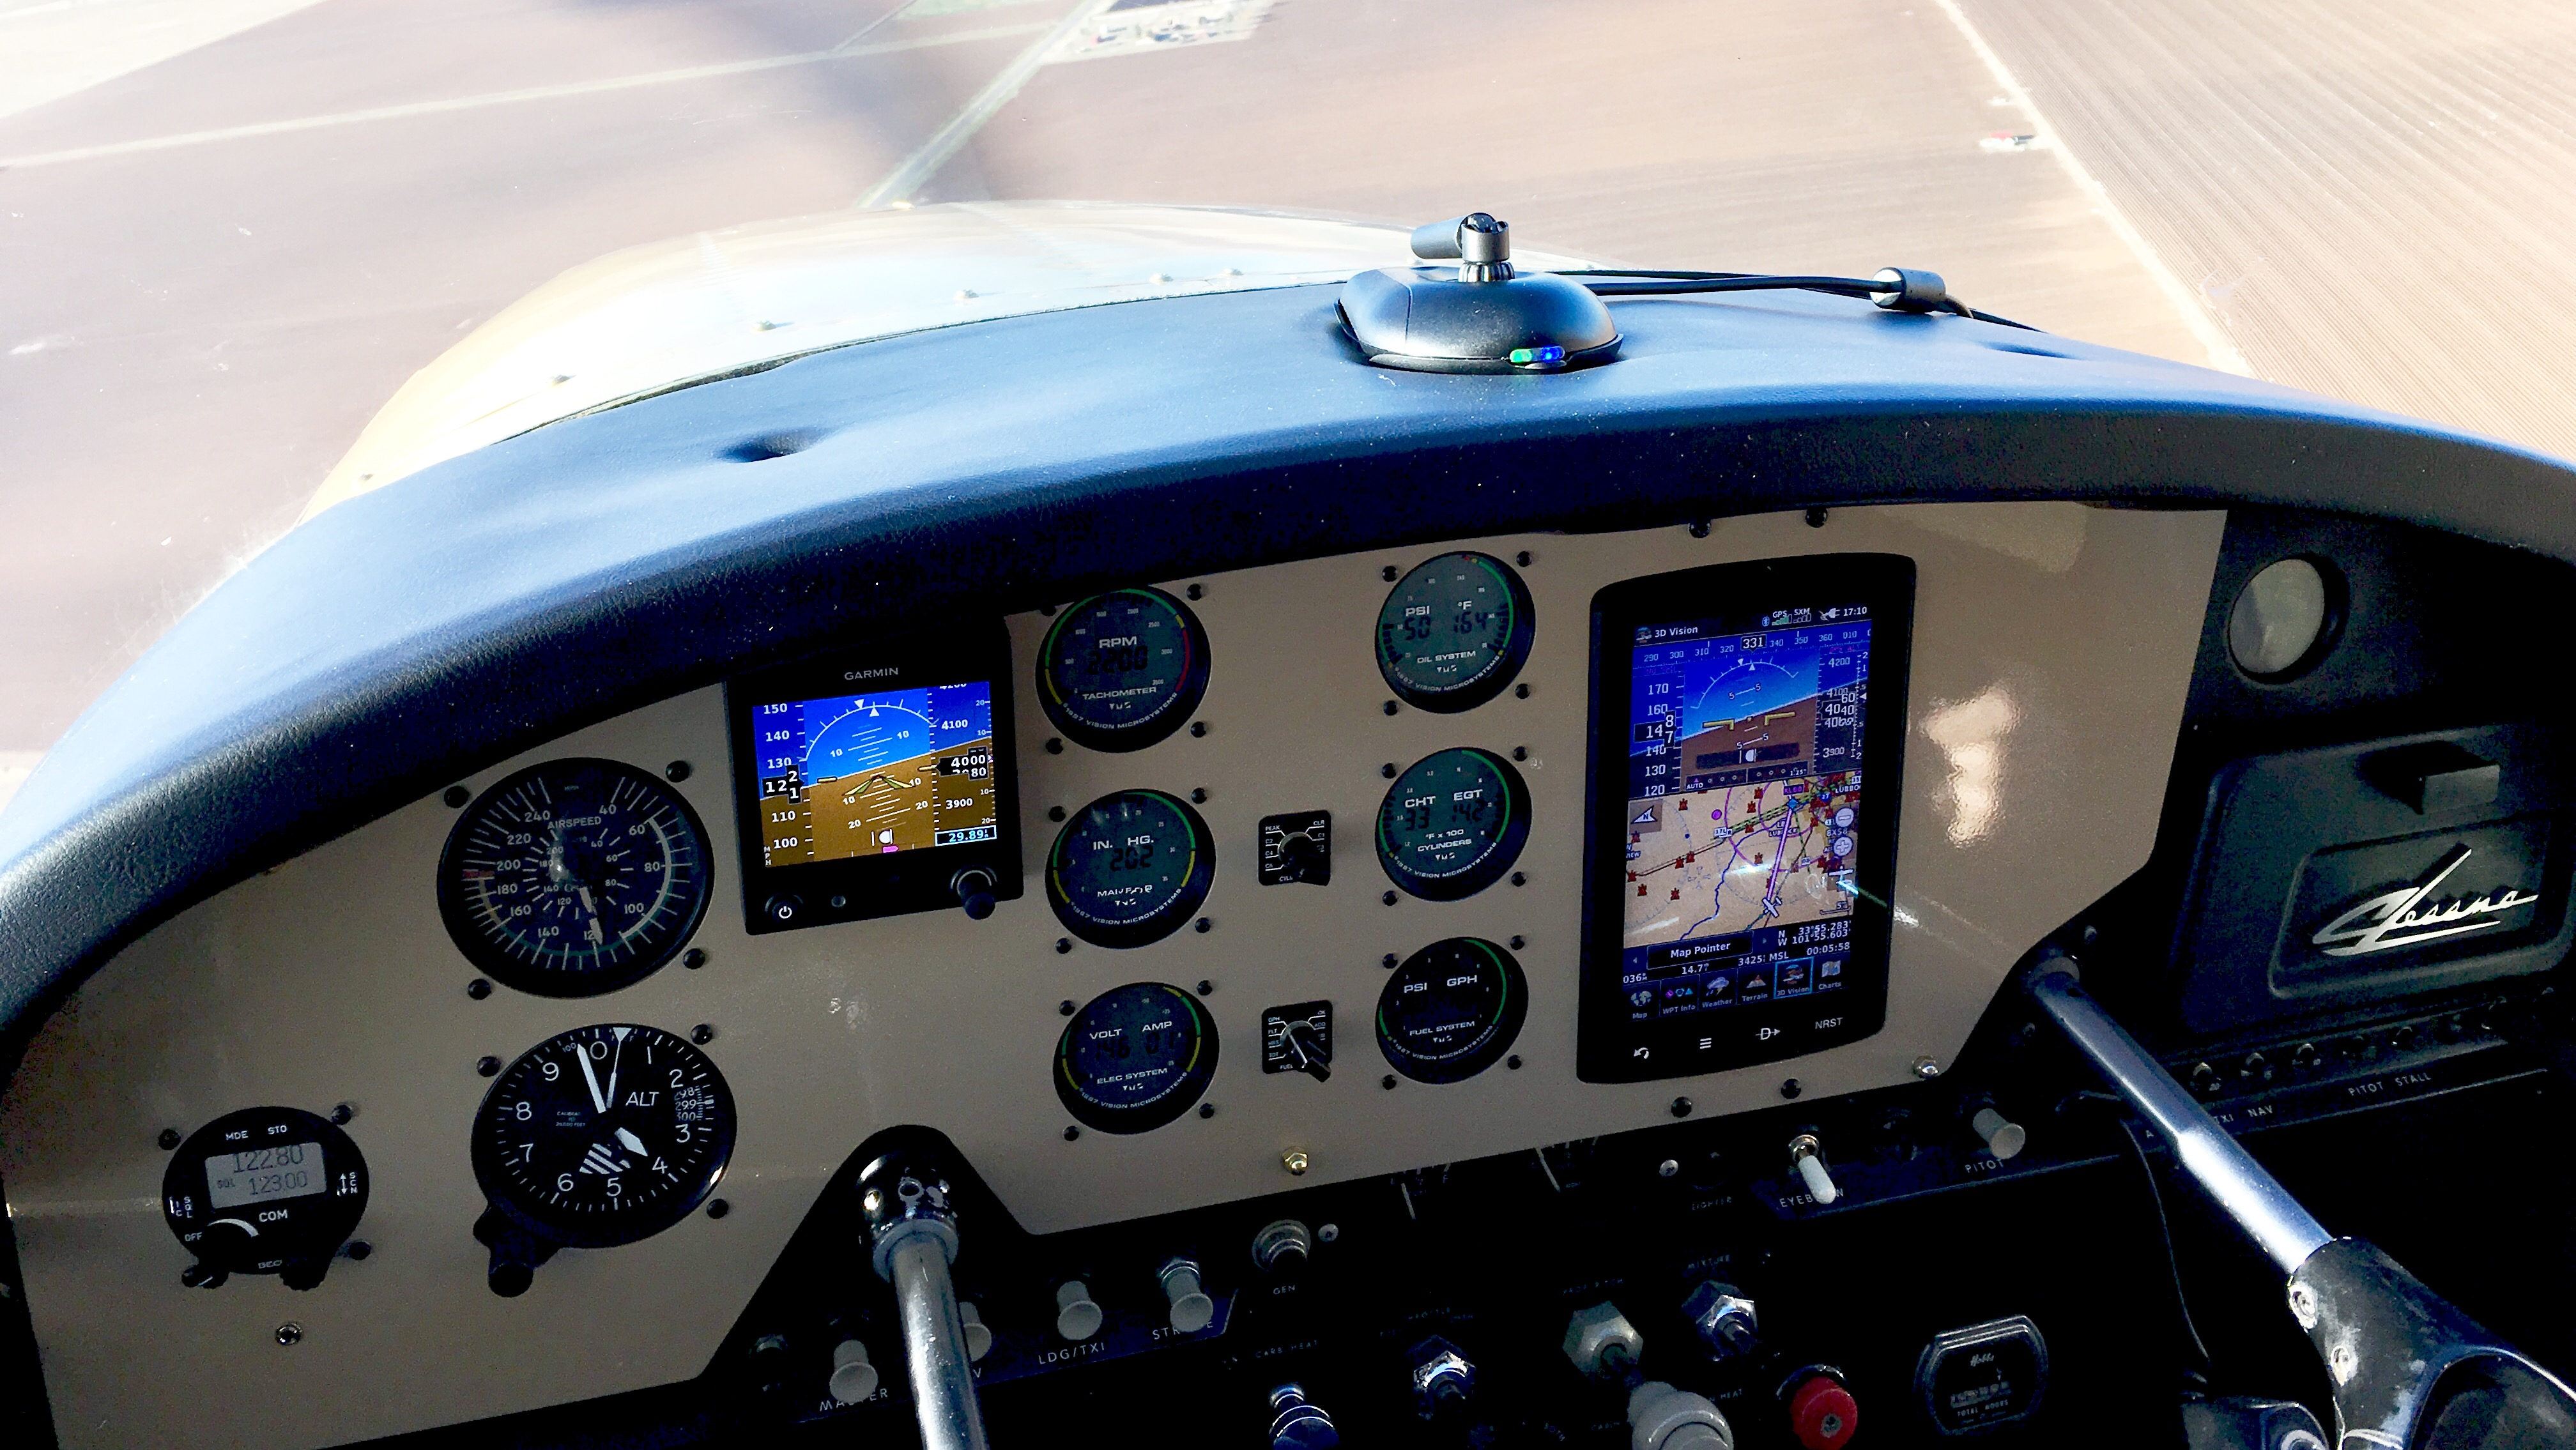 Panel Discussion: Cessna 180 Upgrades on Poor Webjanitor Budget